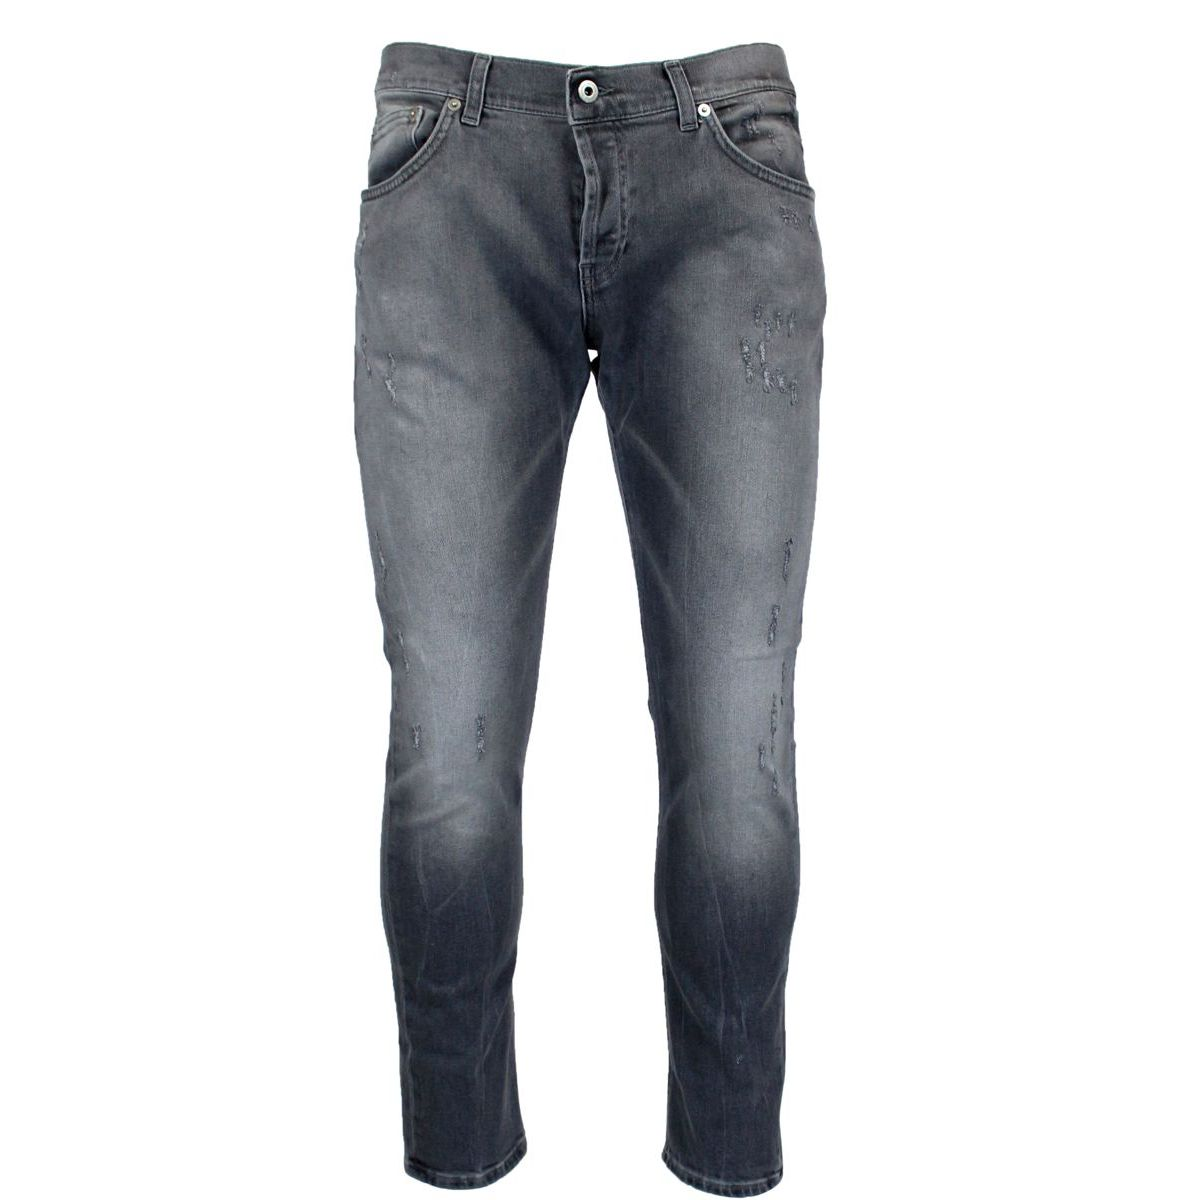 Mius slim jeans with rips Grey Dondup